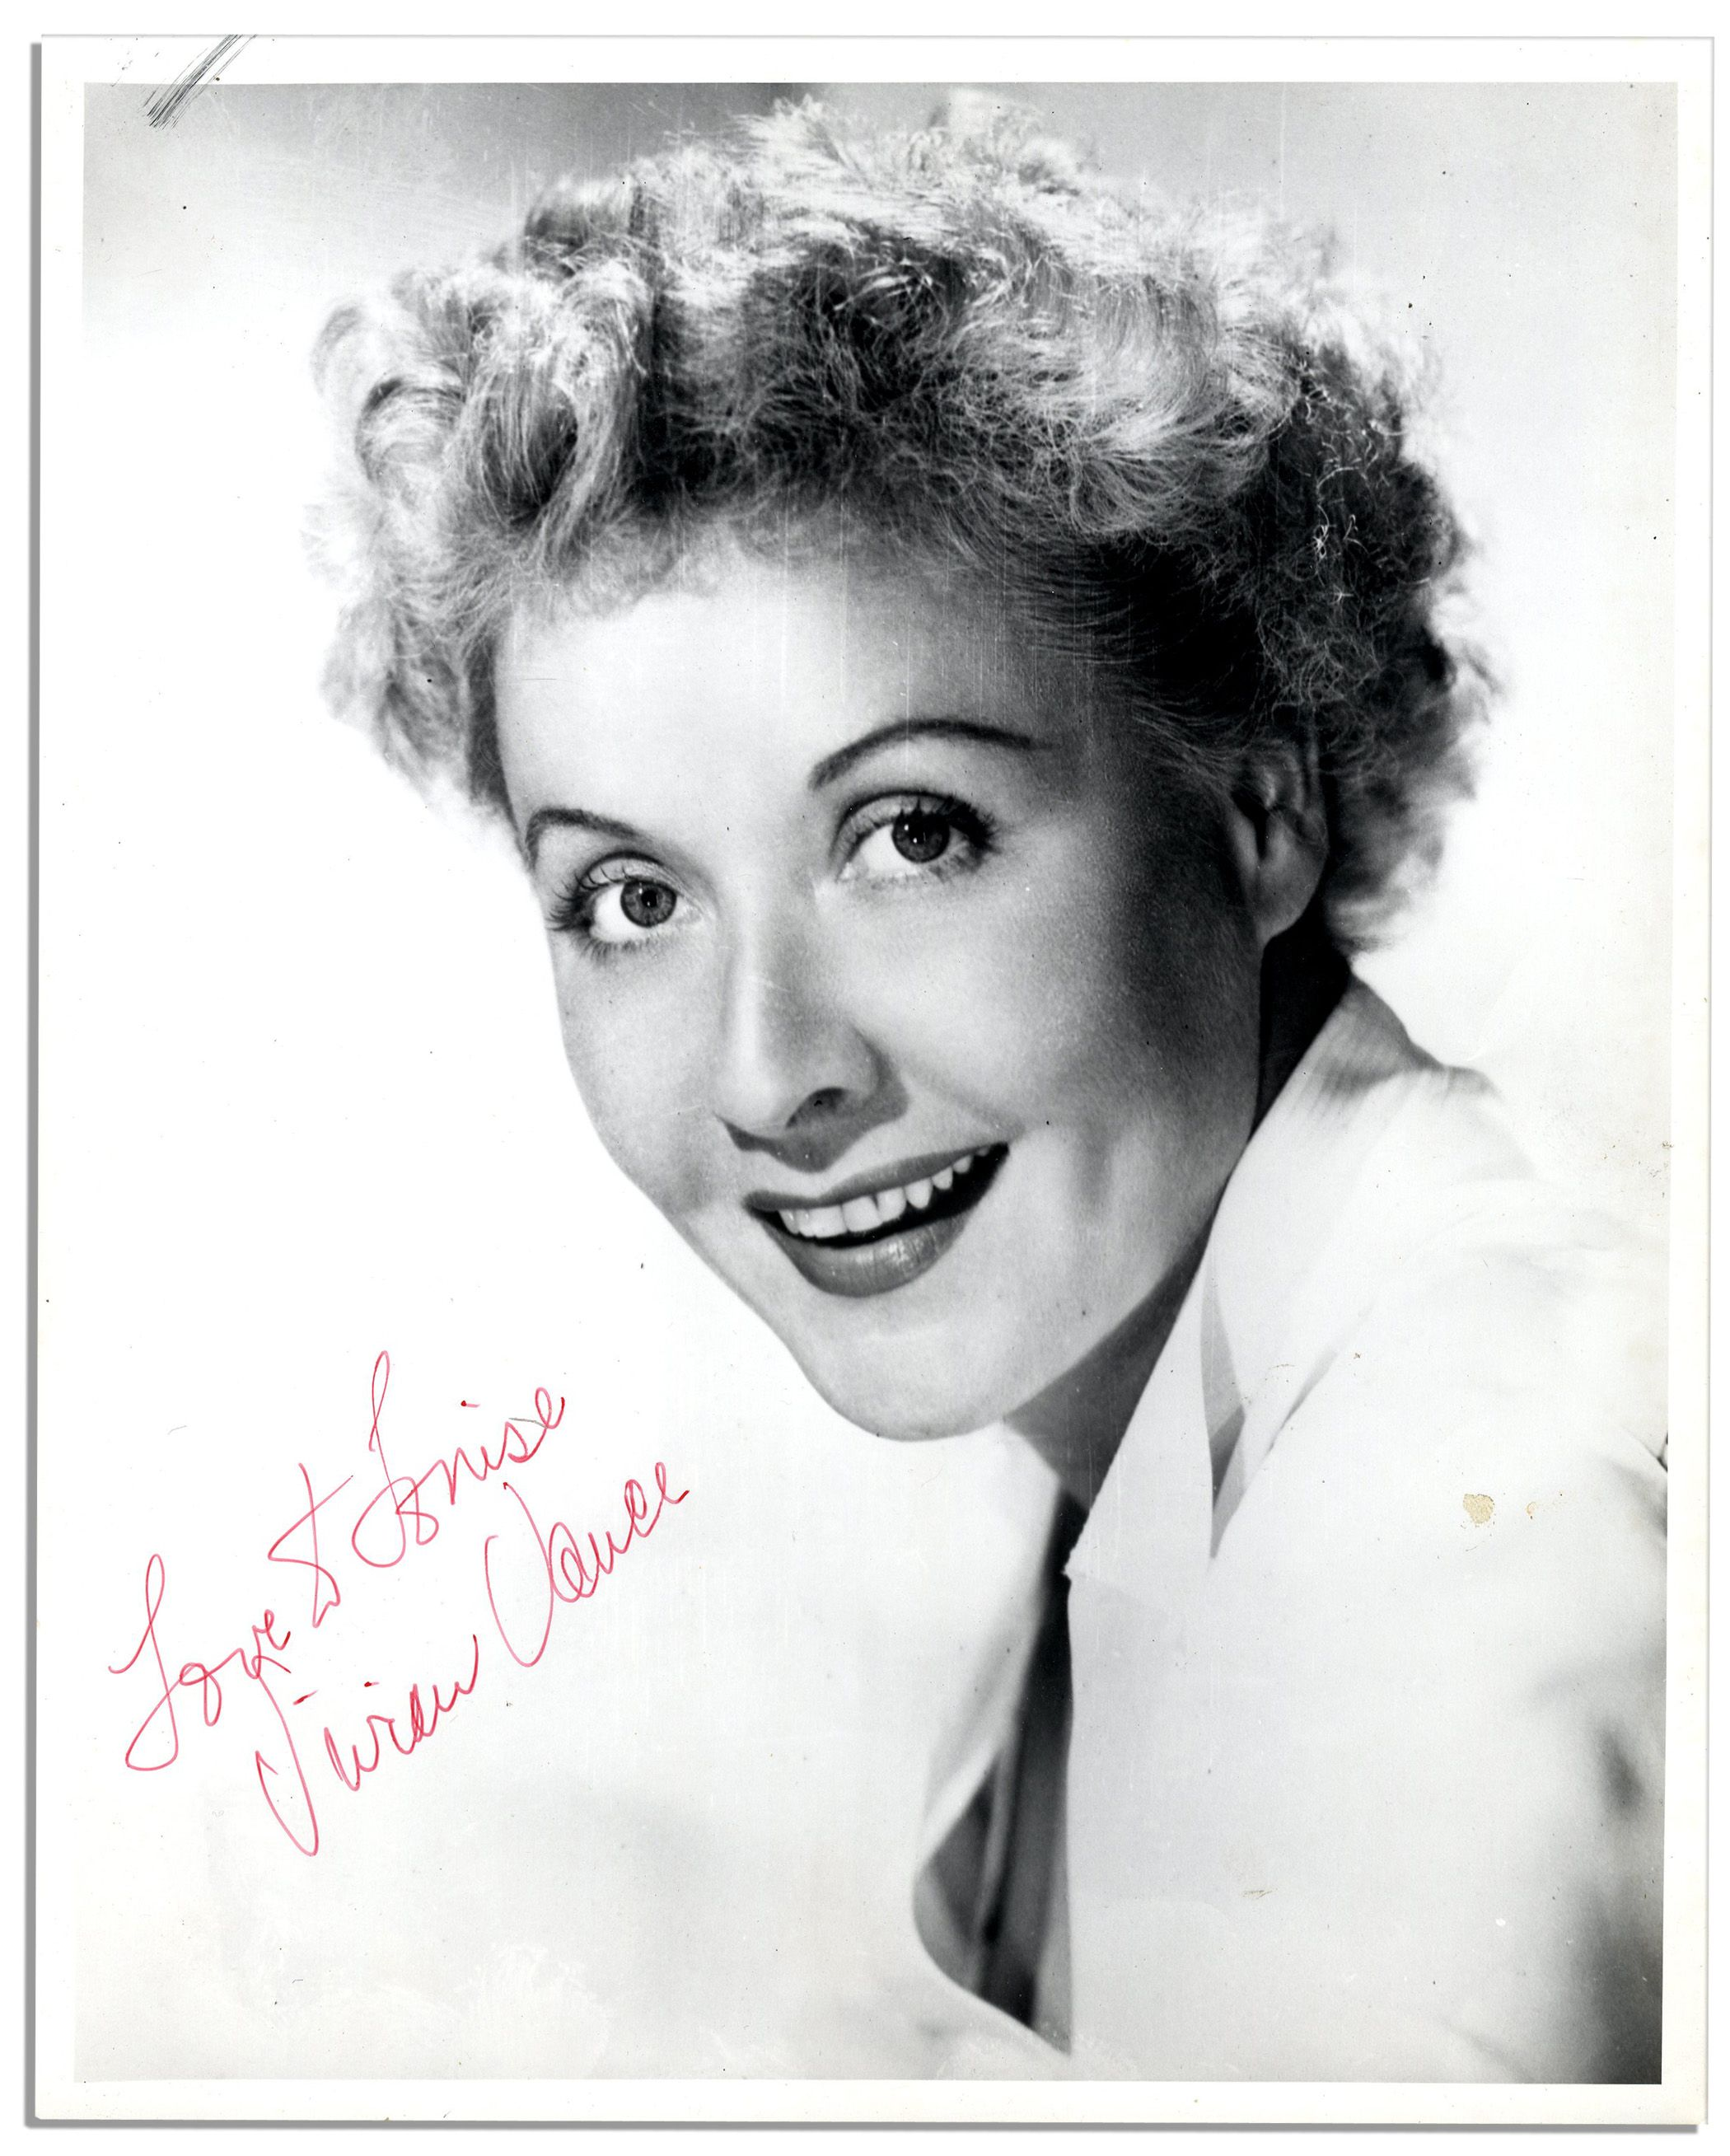 Vivian Vance - Film Actress, Television Actress - Biography.com